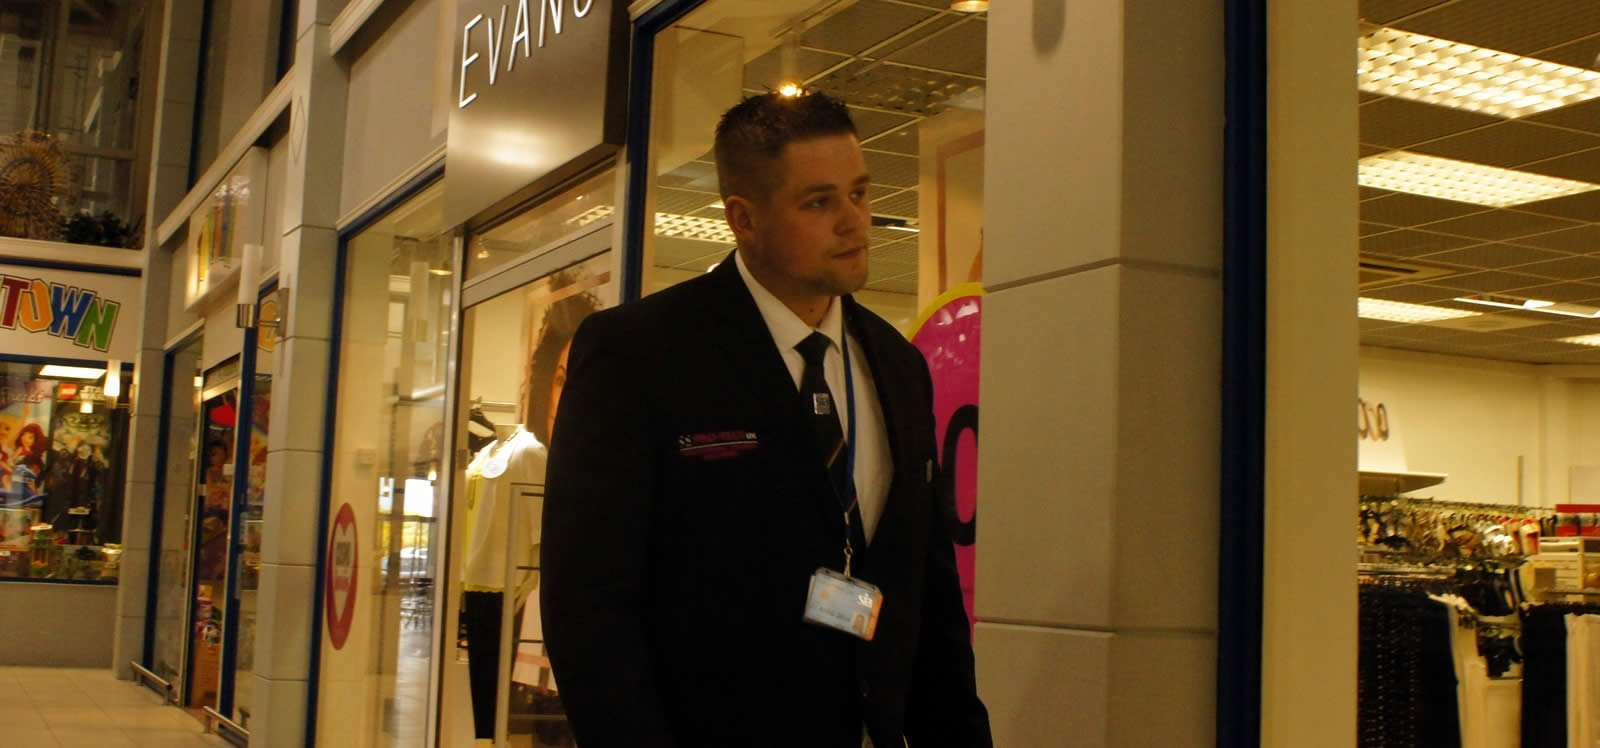 static retail security guards carlisle